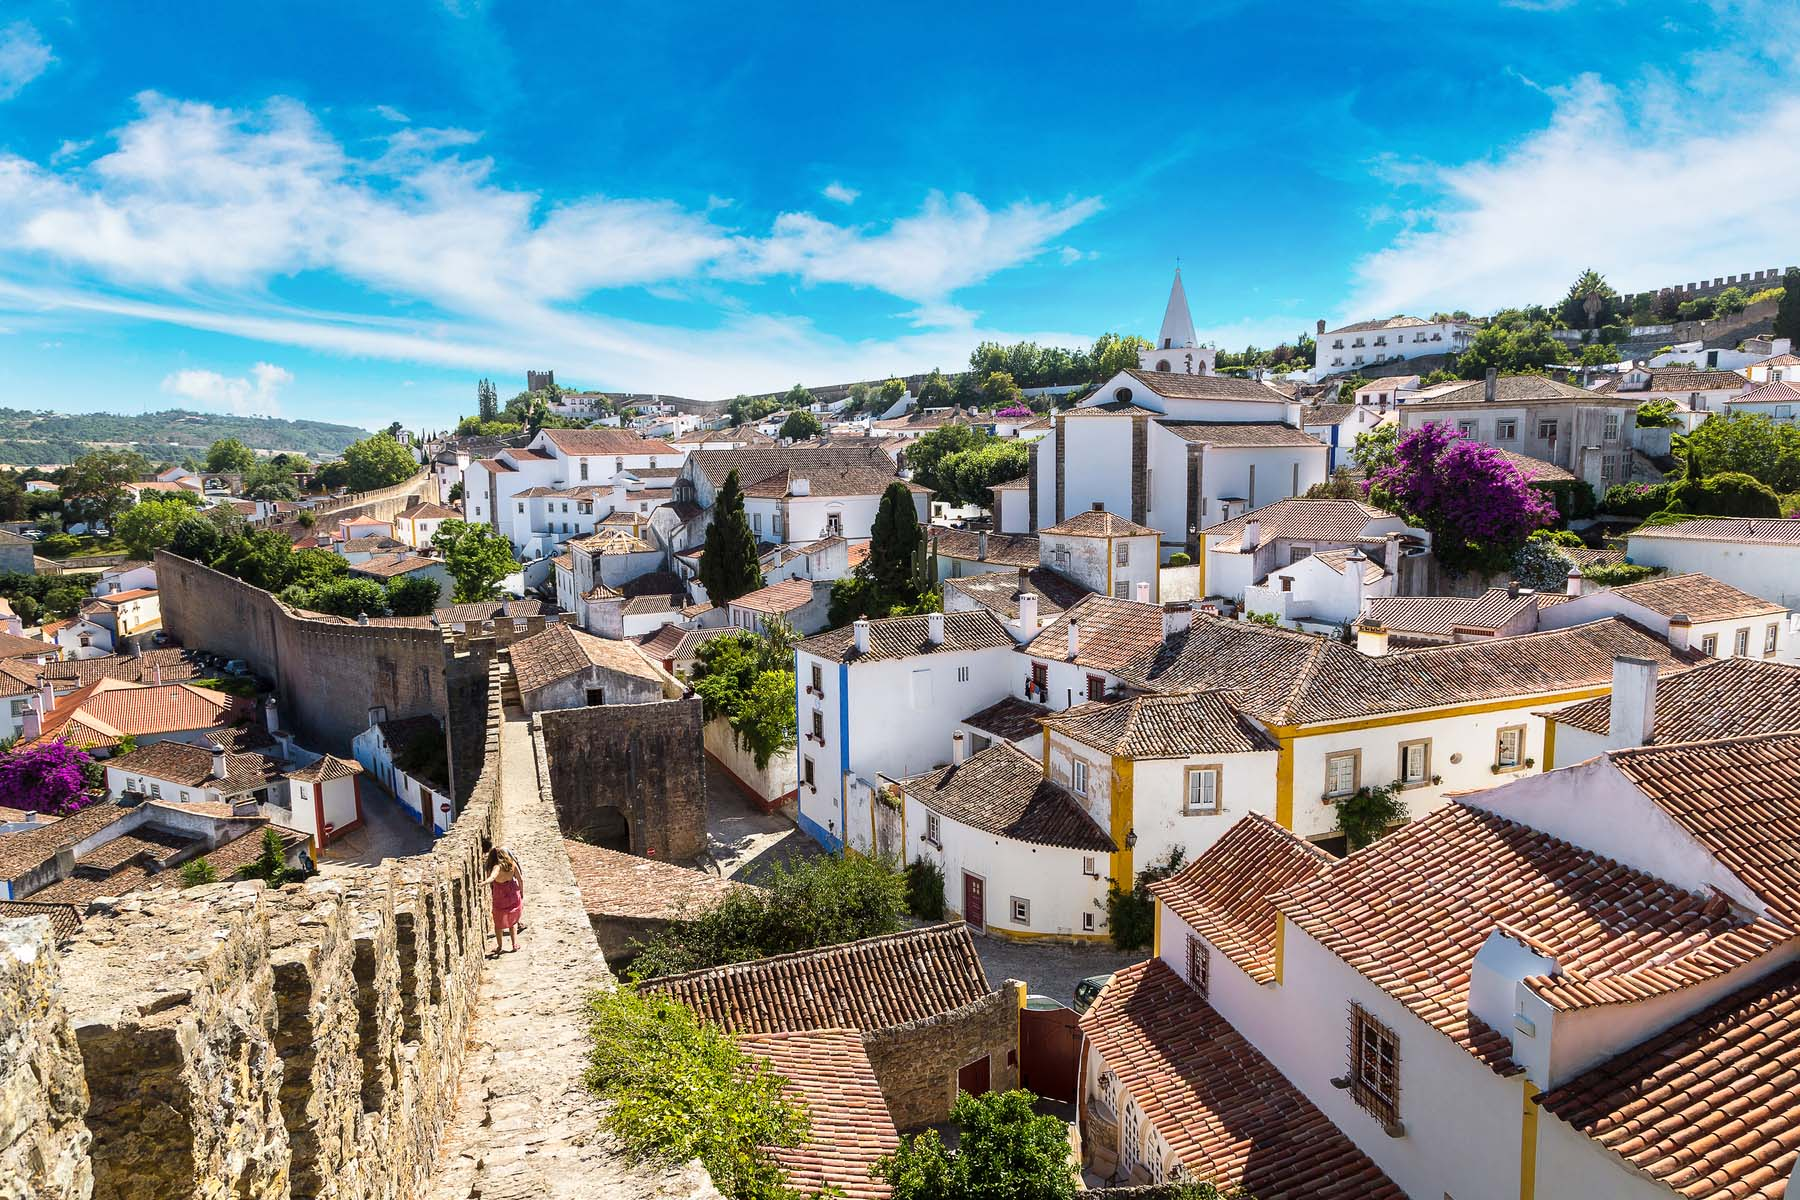 Portuguese village: getting connected in a new home